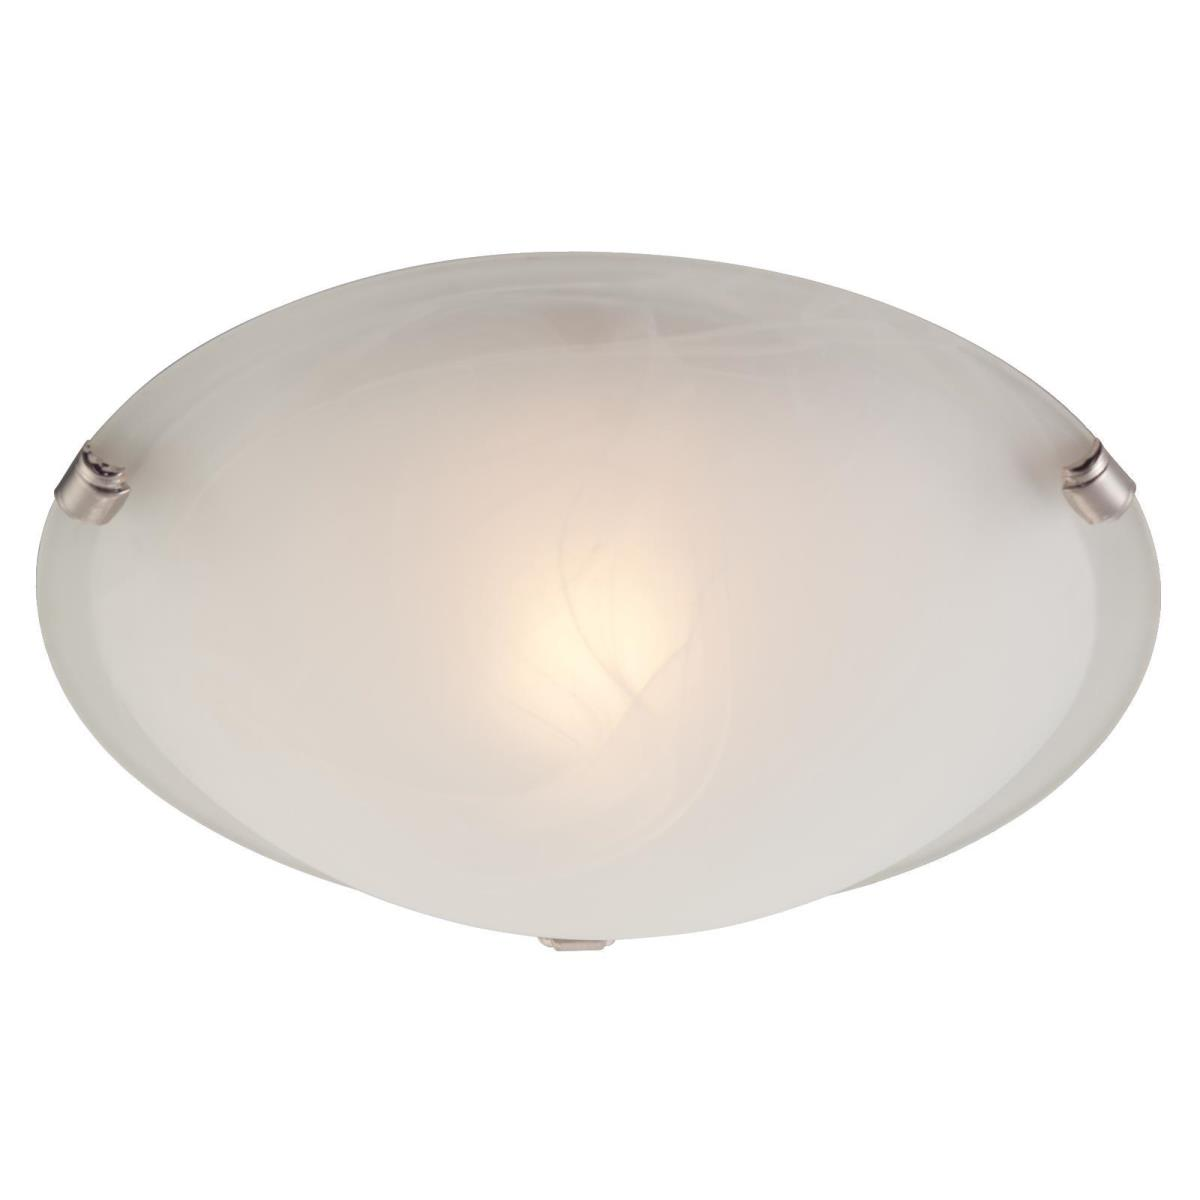 1 Light Flush White and Brushed Nickel Finish with White Alabaster Glass